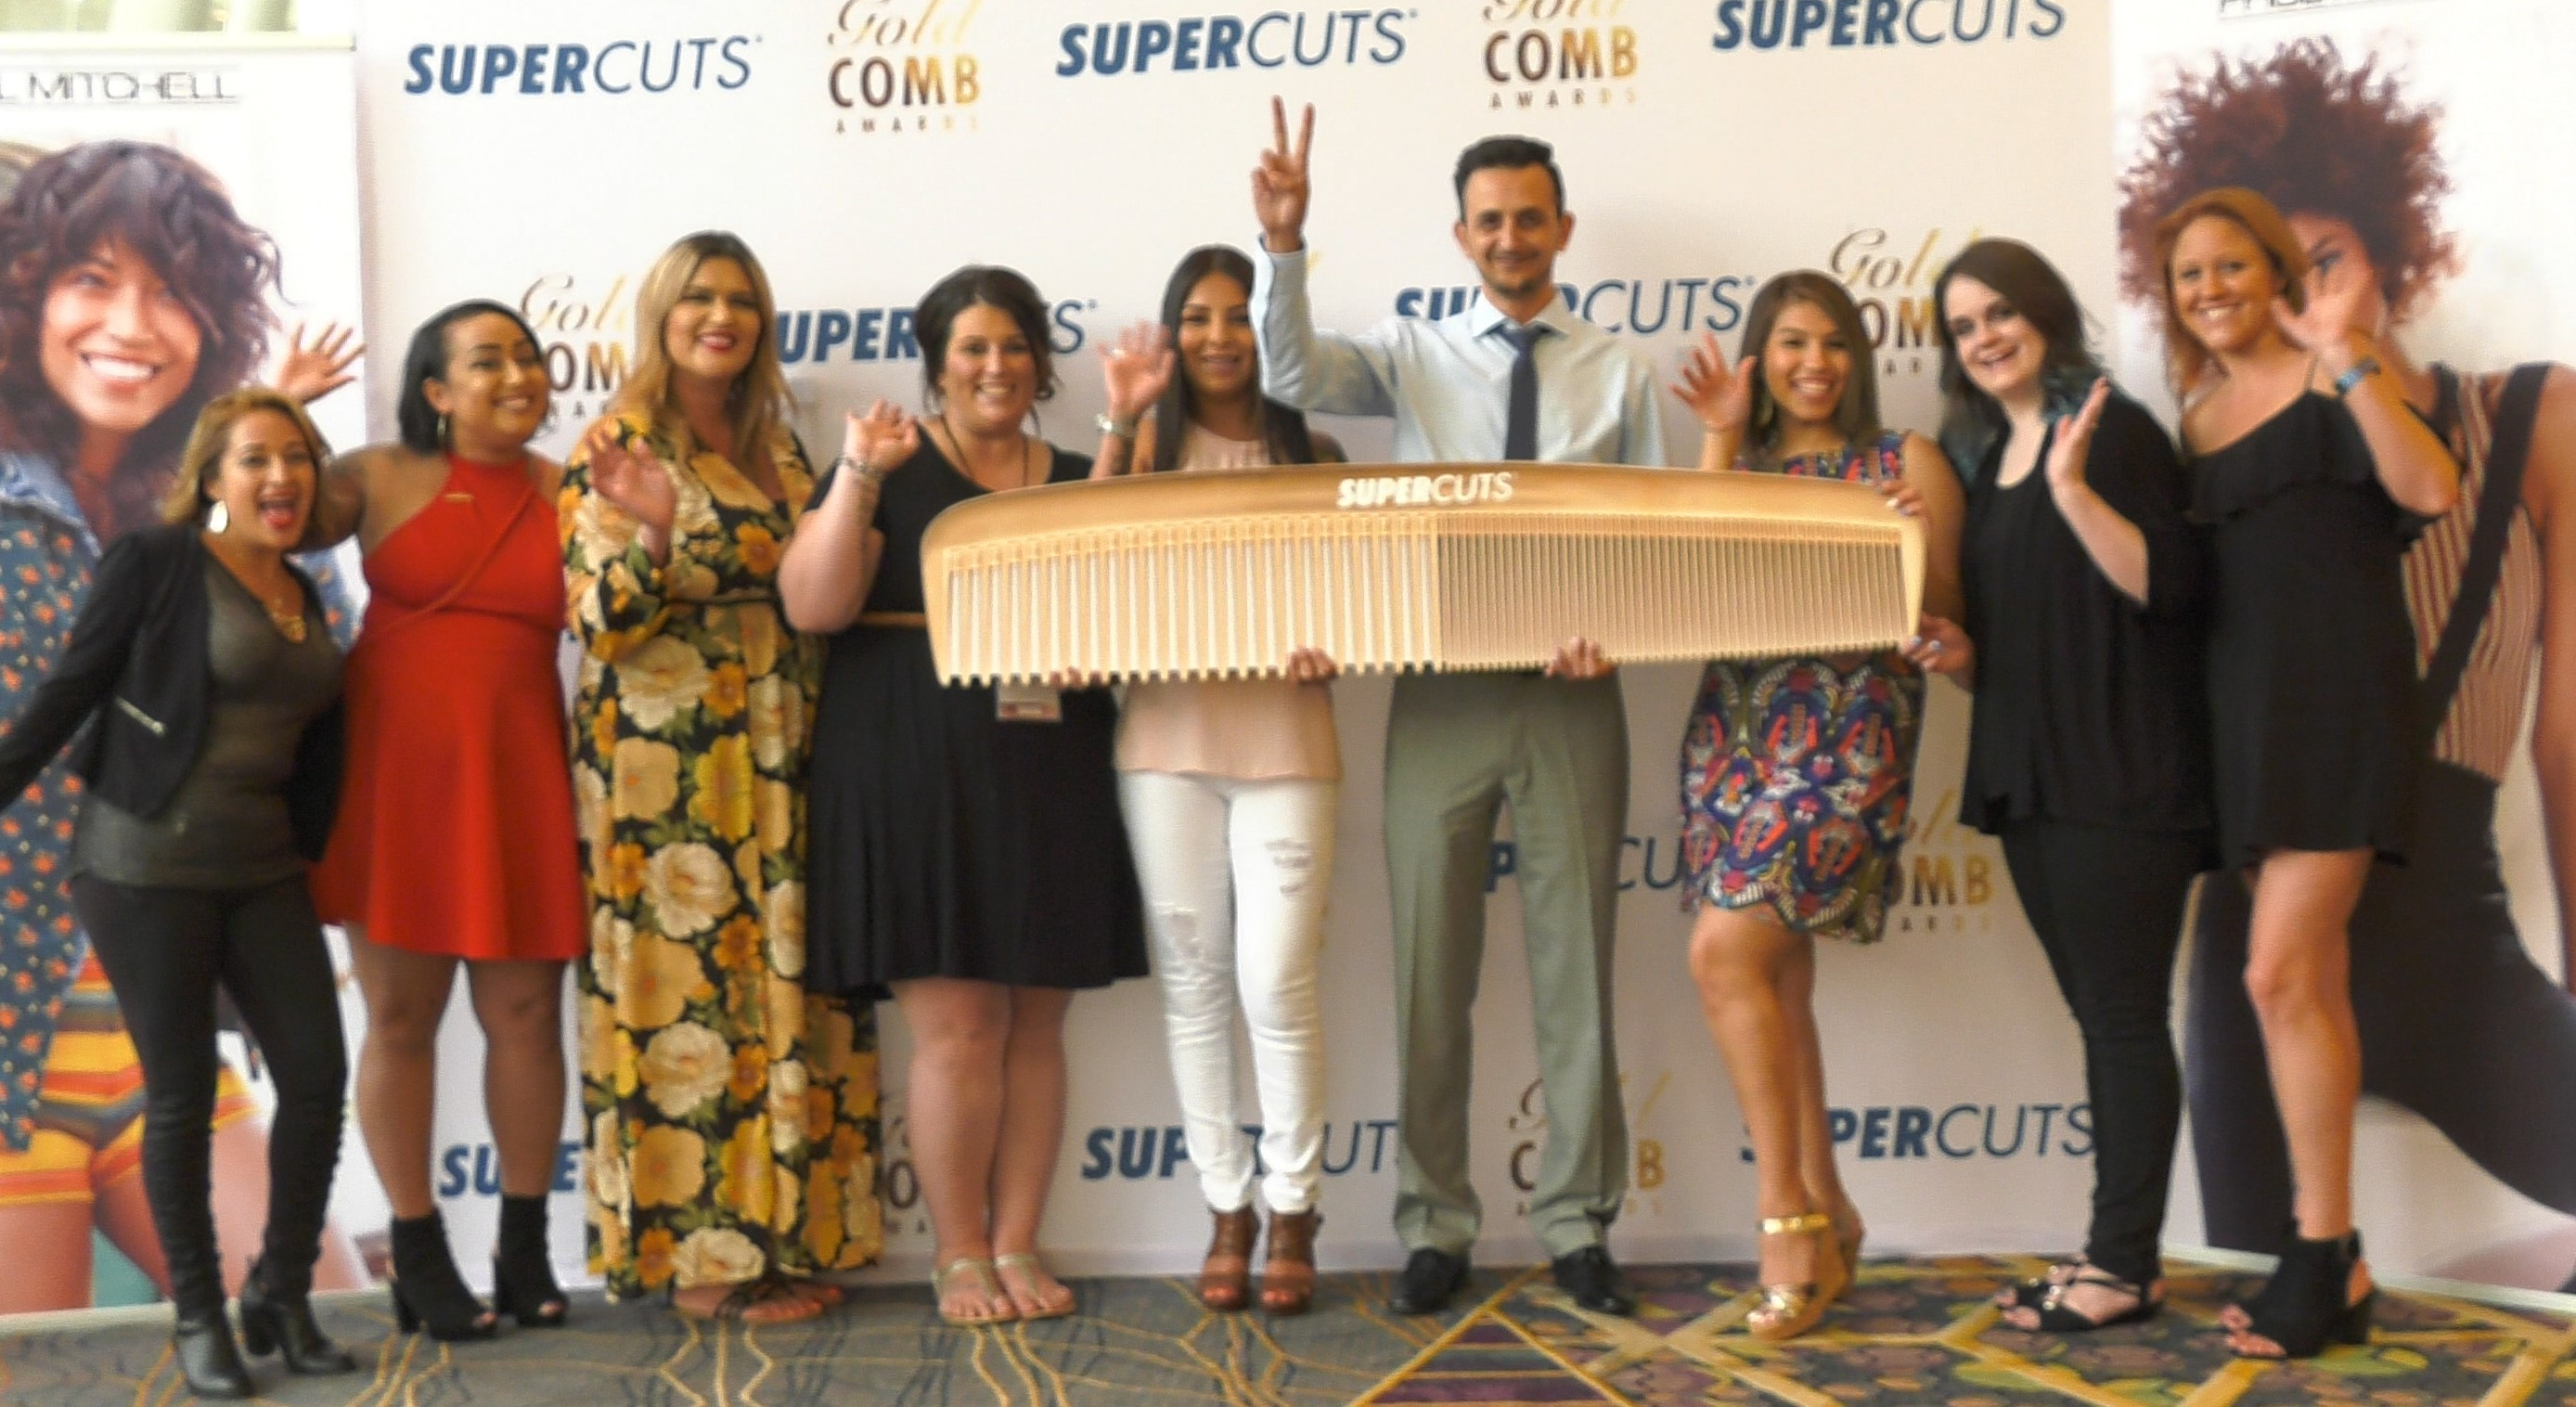 Supercuts Gold Comb Contest Is On: 50 Stylists Will Win Top Prizes